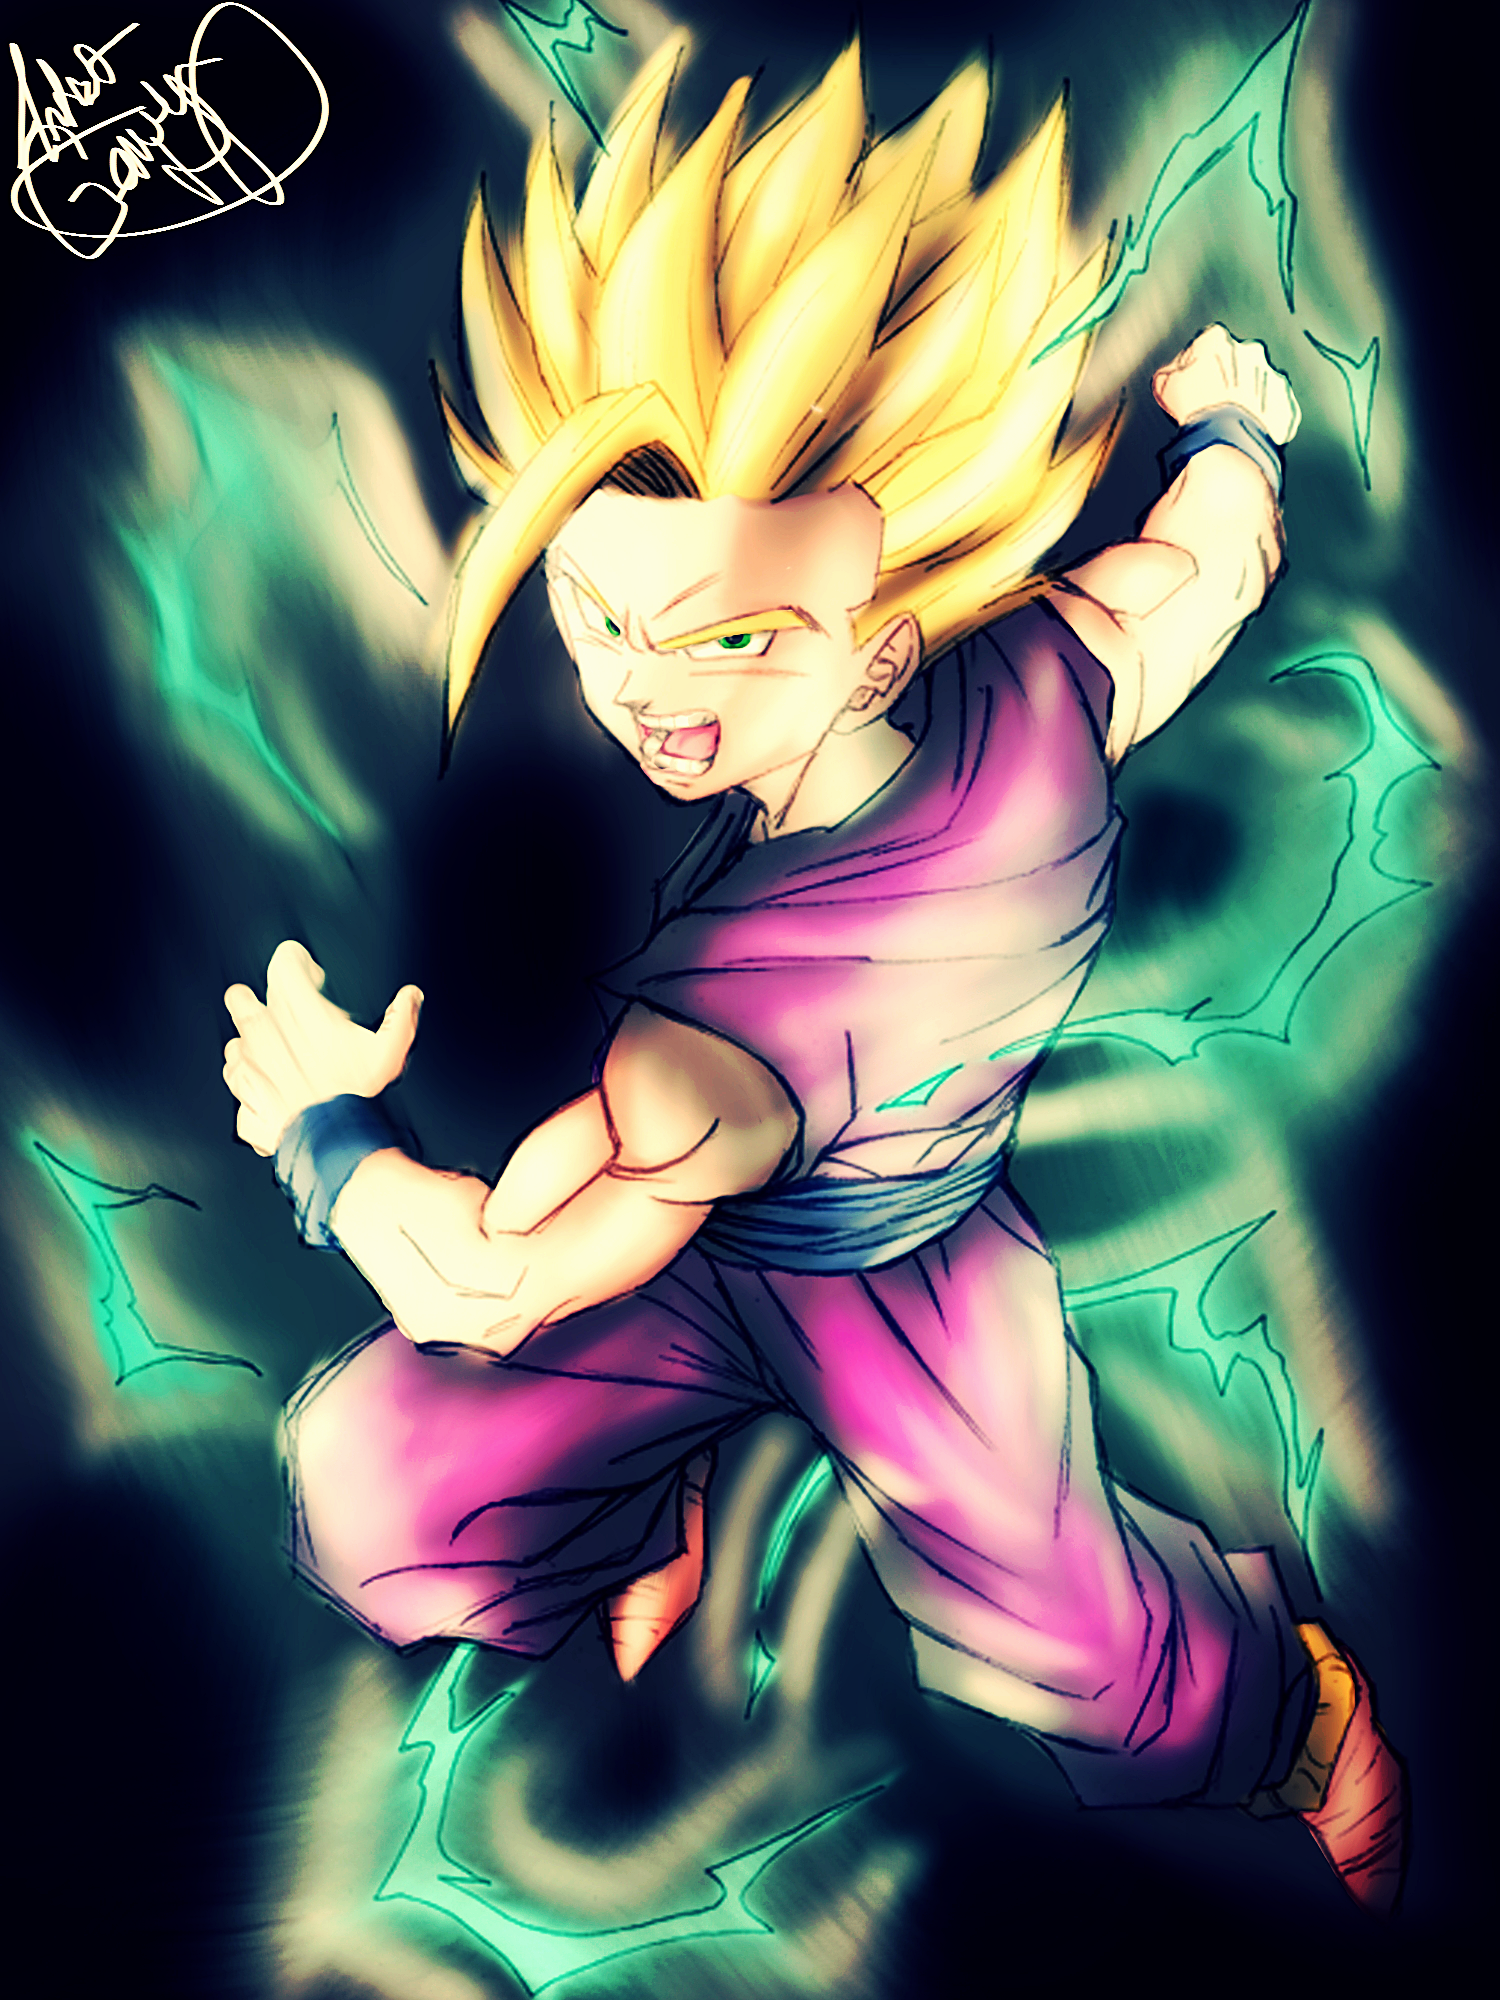 Dragon ball z gohan fanart by artistgamerhd on deviantart - Dragon ball z gohan images ...